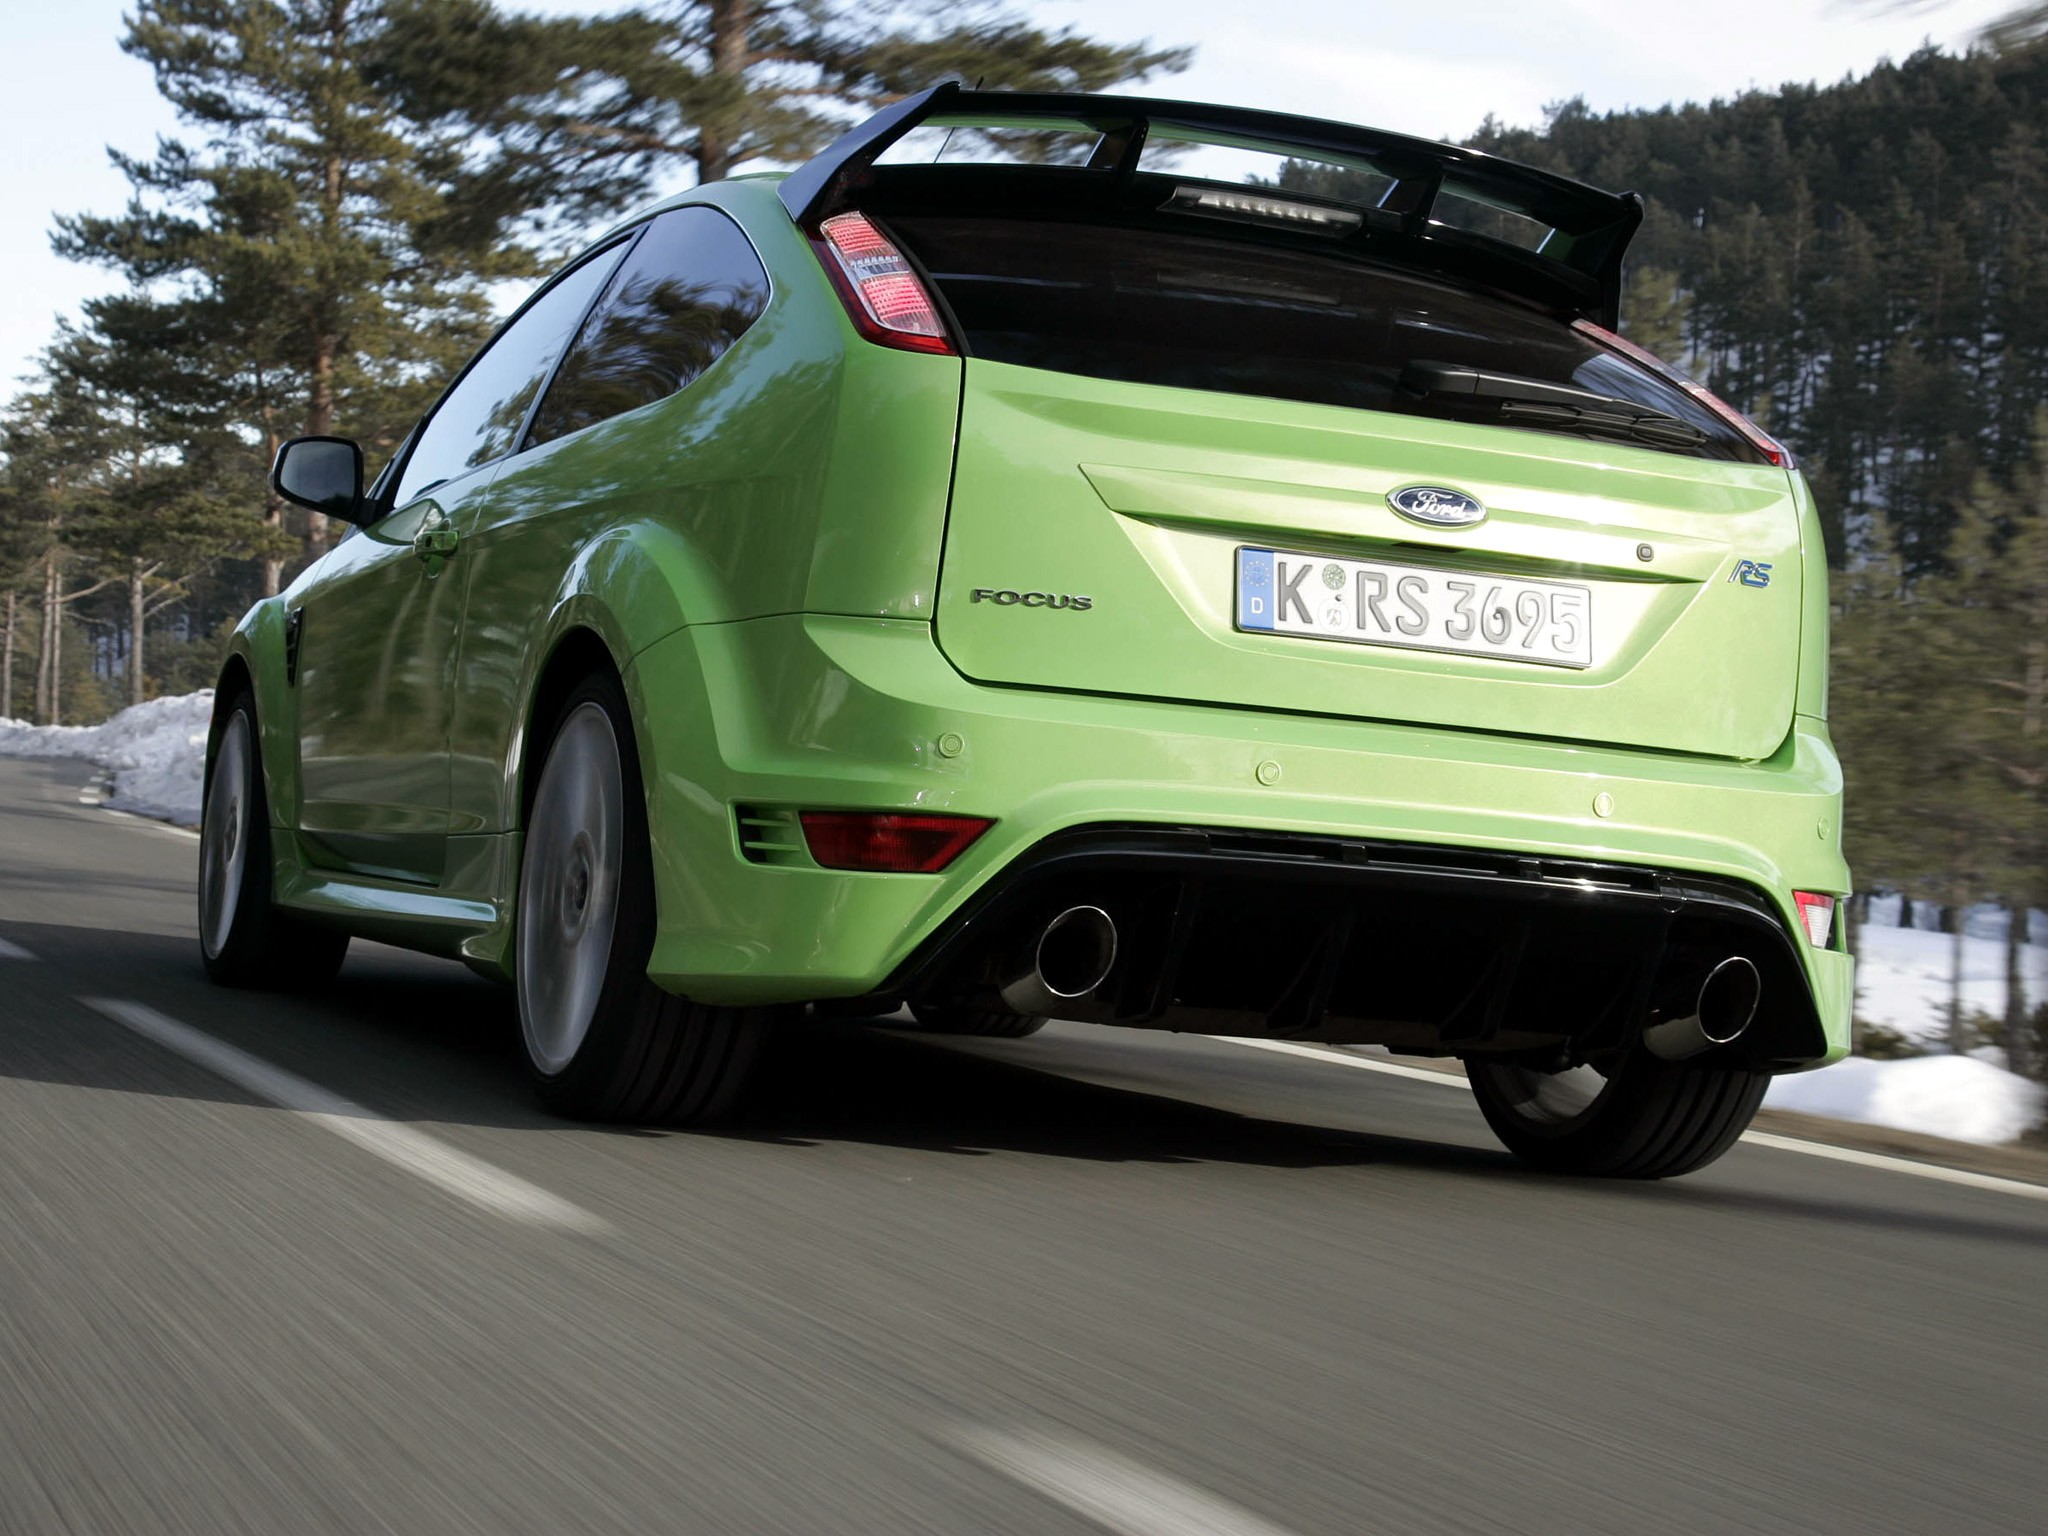 Ford Focus Rs Hp >> FORD Focus RS - 2008, 2009, 2010, 2011 - autoevolution